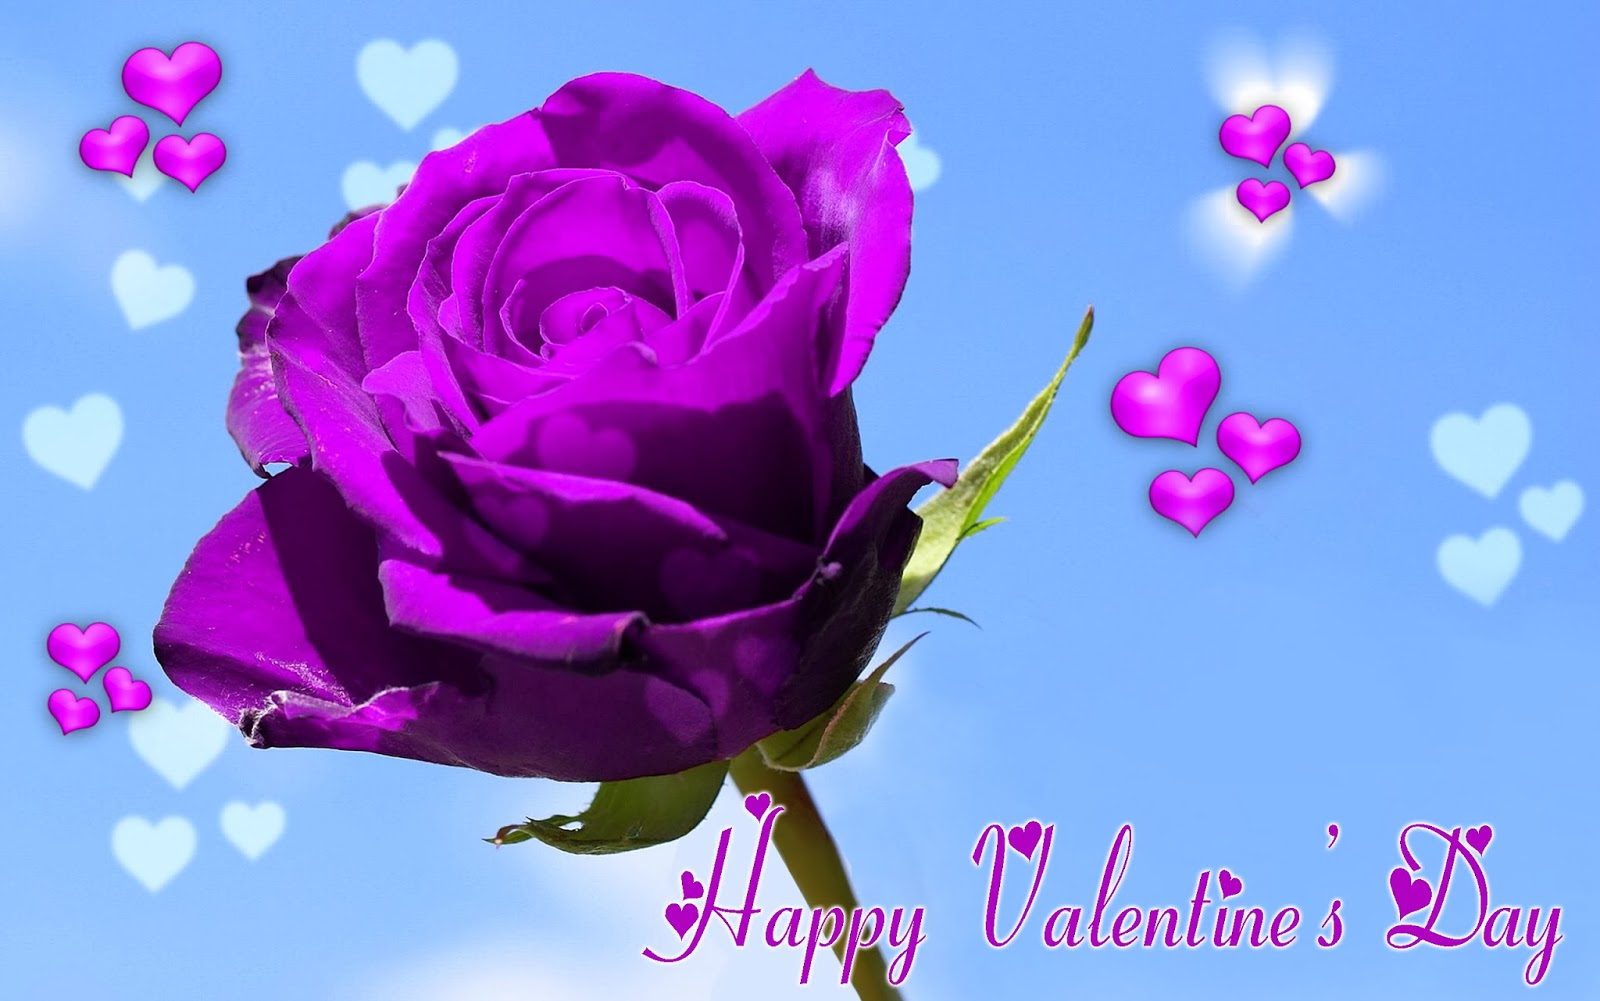 Happy-Valentines-Day-Wishes-Wallpapers-With-Flower-Image-HD-Wide